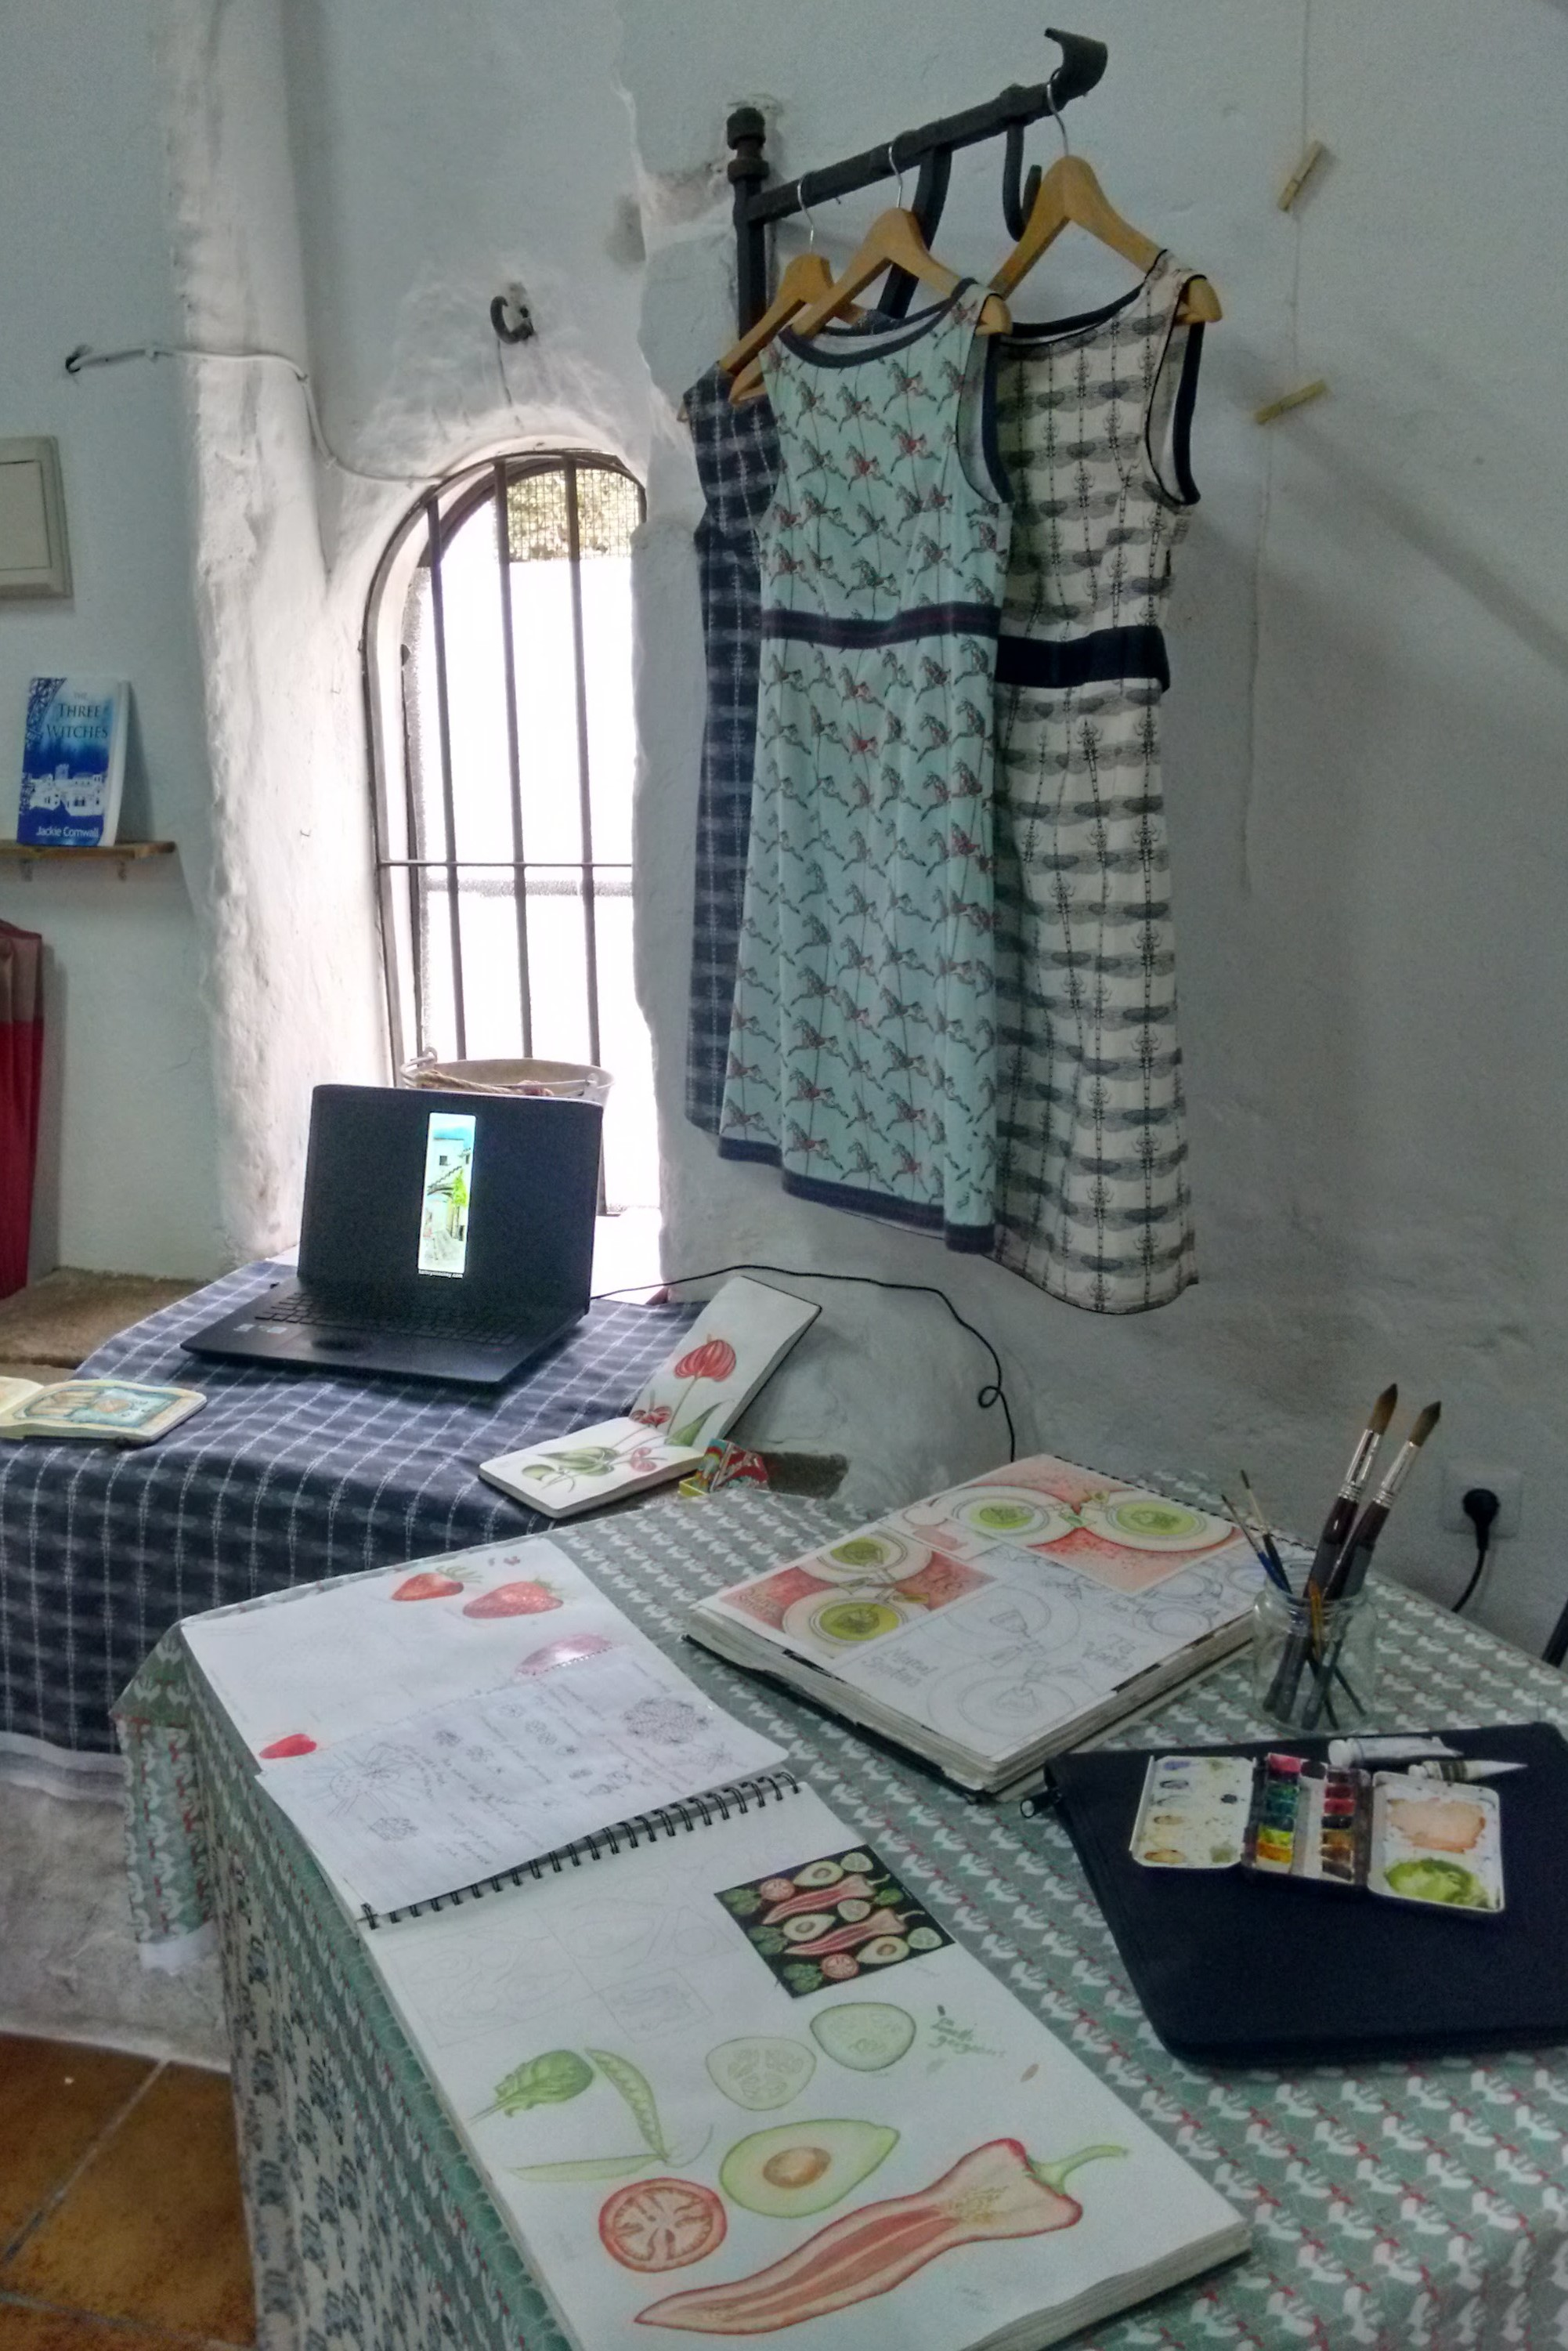 sketchbook, te verde, green tea, play, marcel snyders, arte vejer, exhibition, vejer de la frontera, castle, illustration, book cover, watercolour, pen and watercolour, art, drawing, painting, fabric design, surface design, digital printing